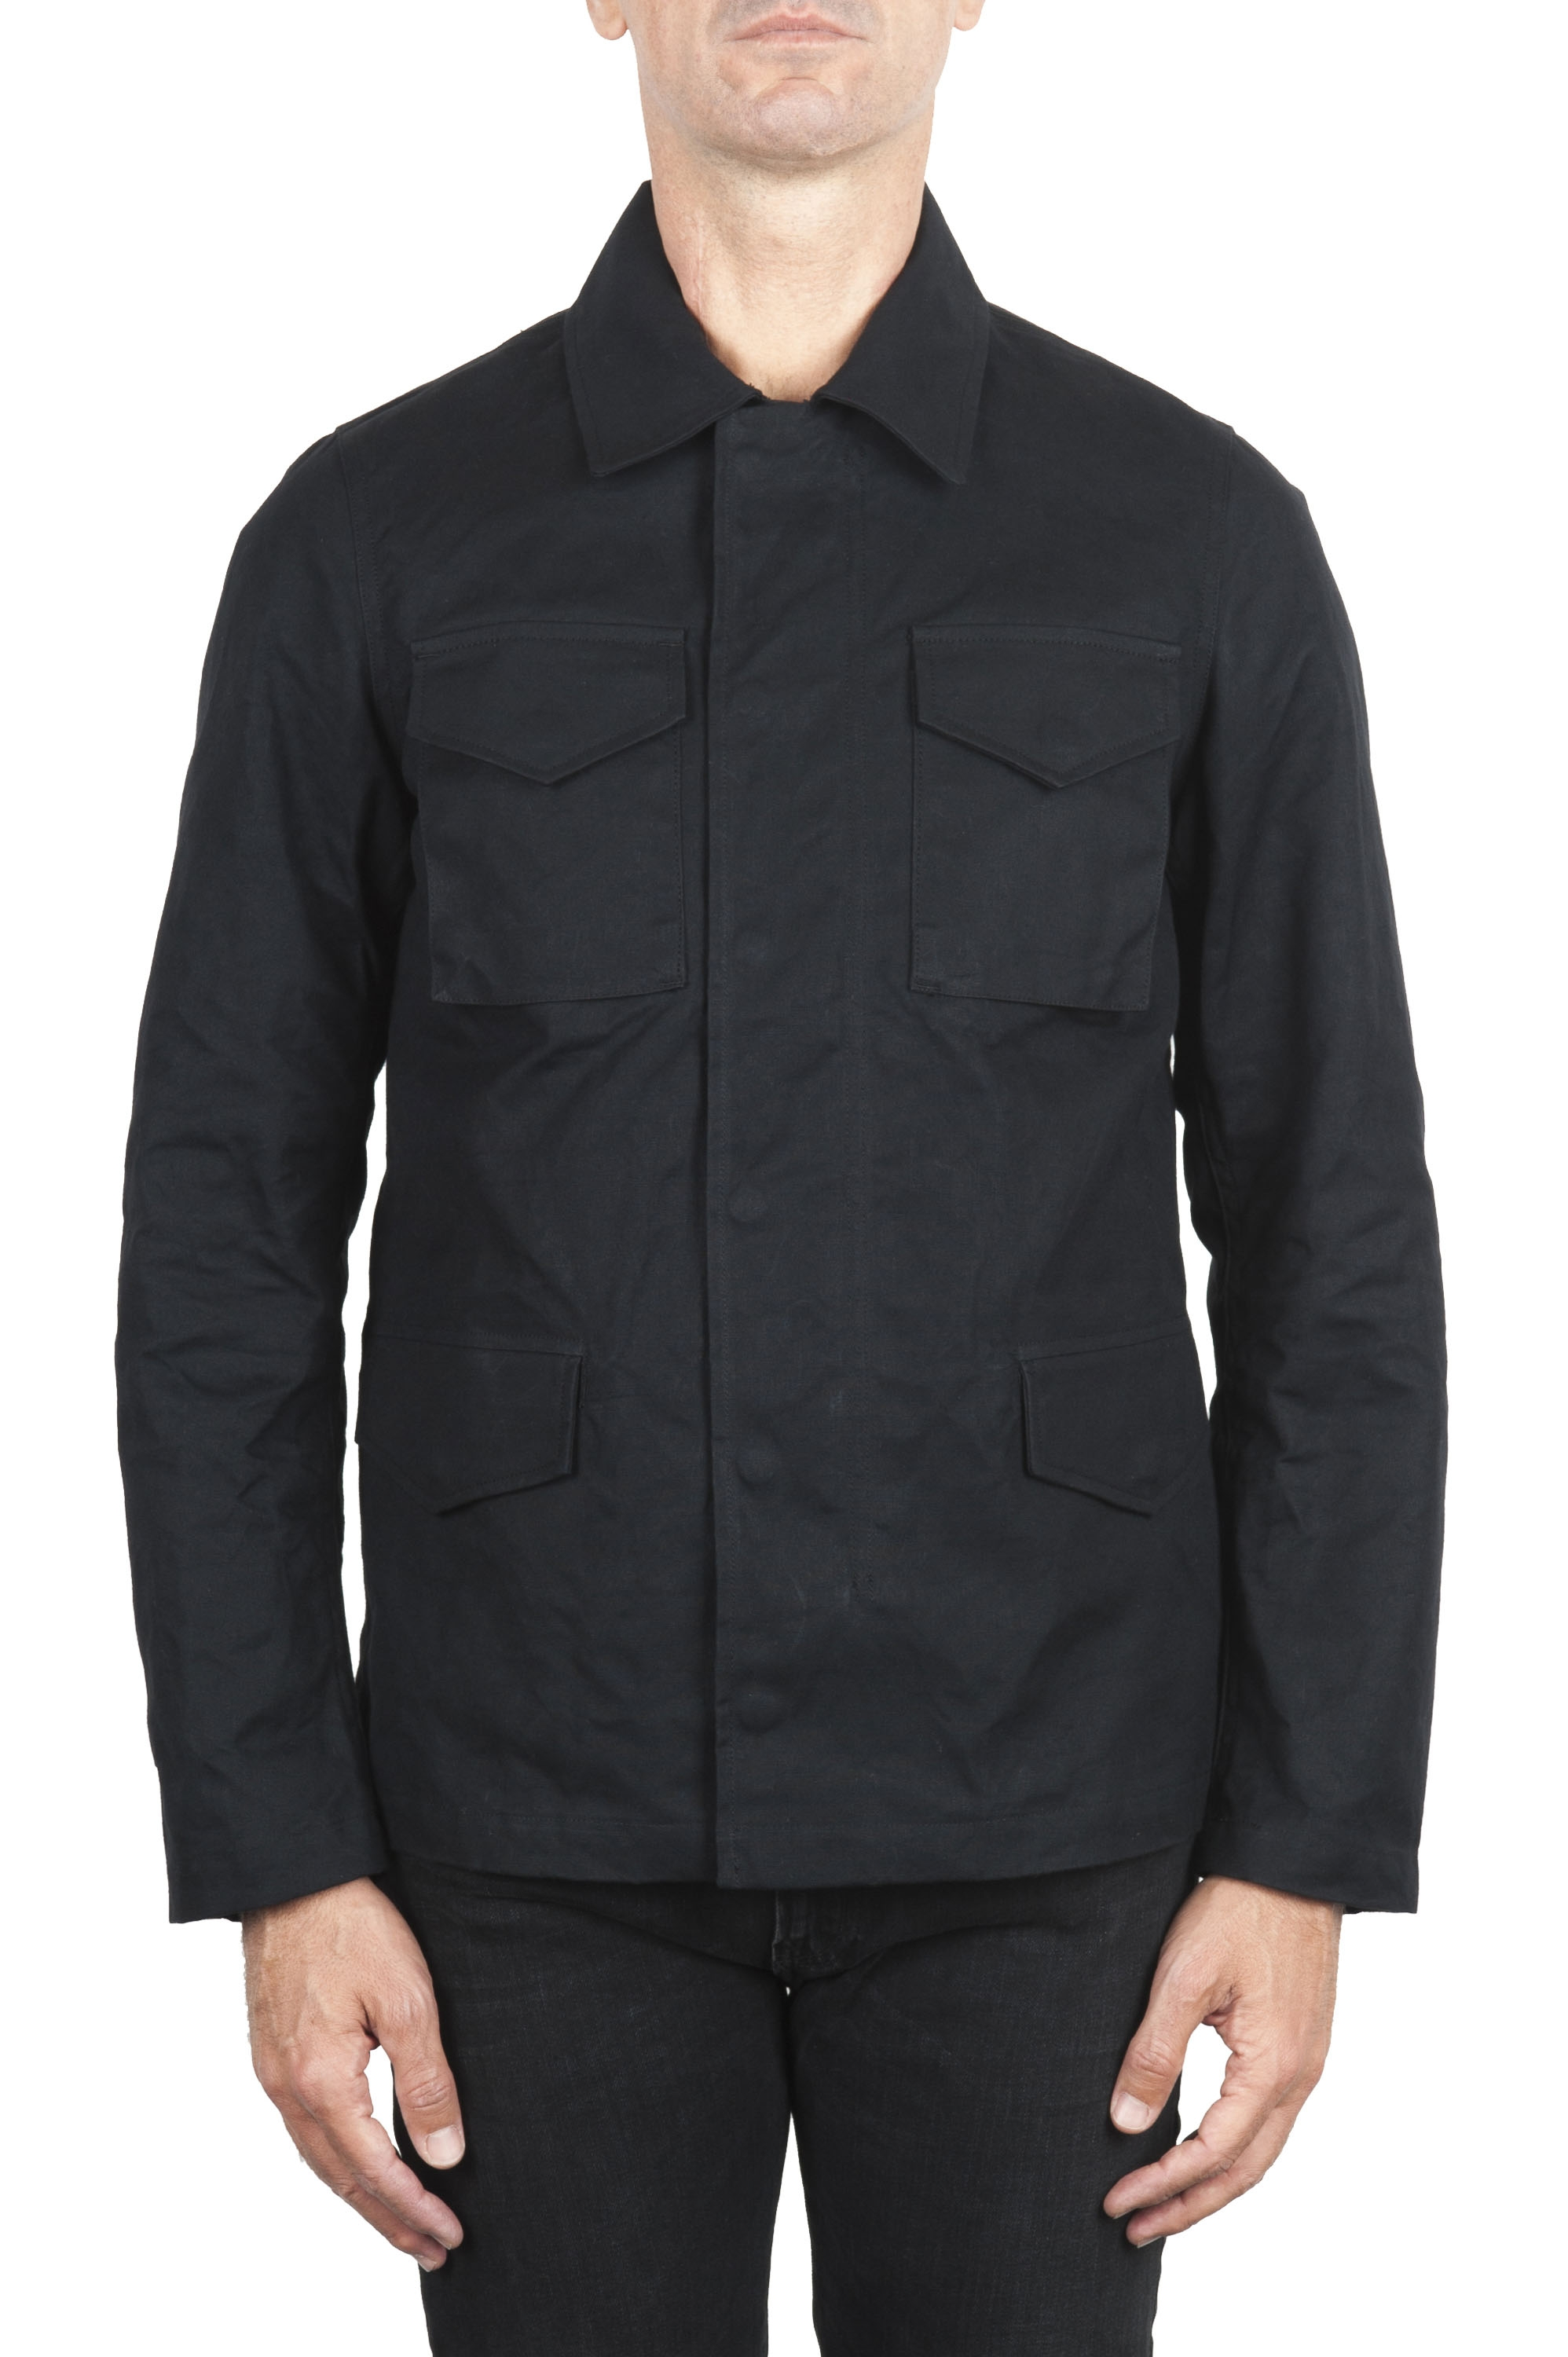 SBU 01560 Wind and waterproof hunter jacket in black oiled cotton 01